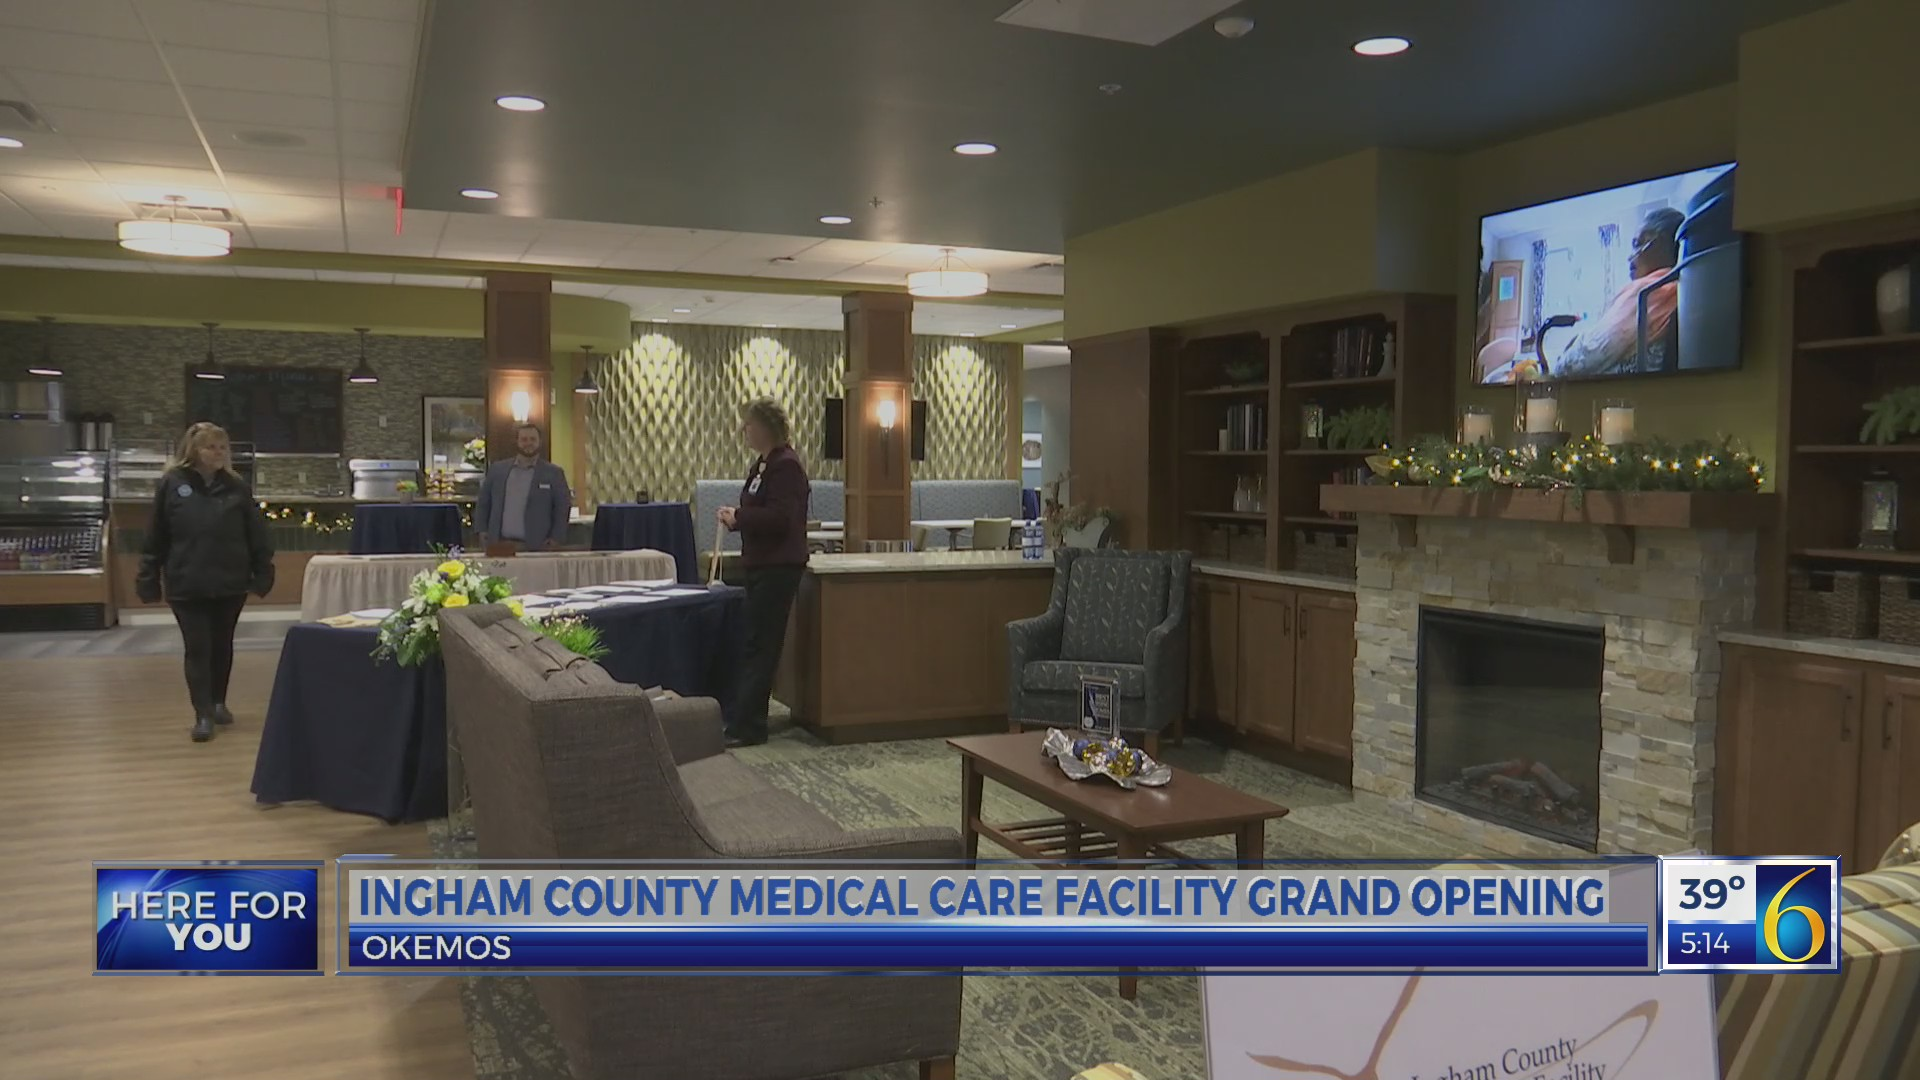 Ingham county medical care facility